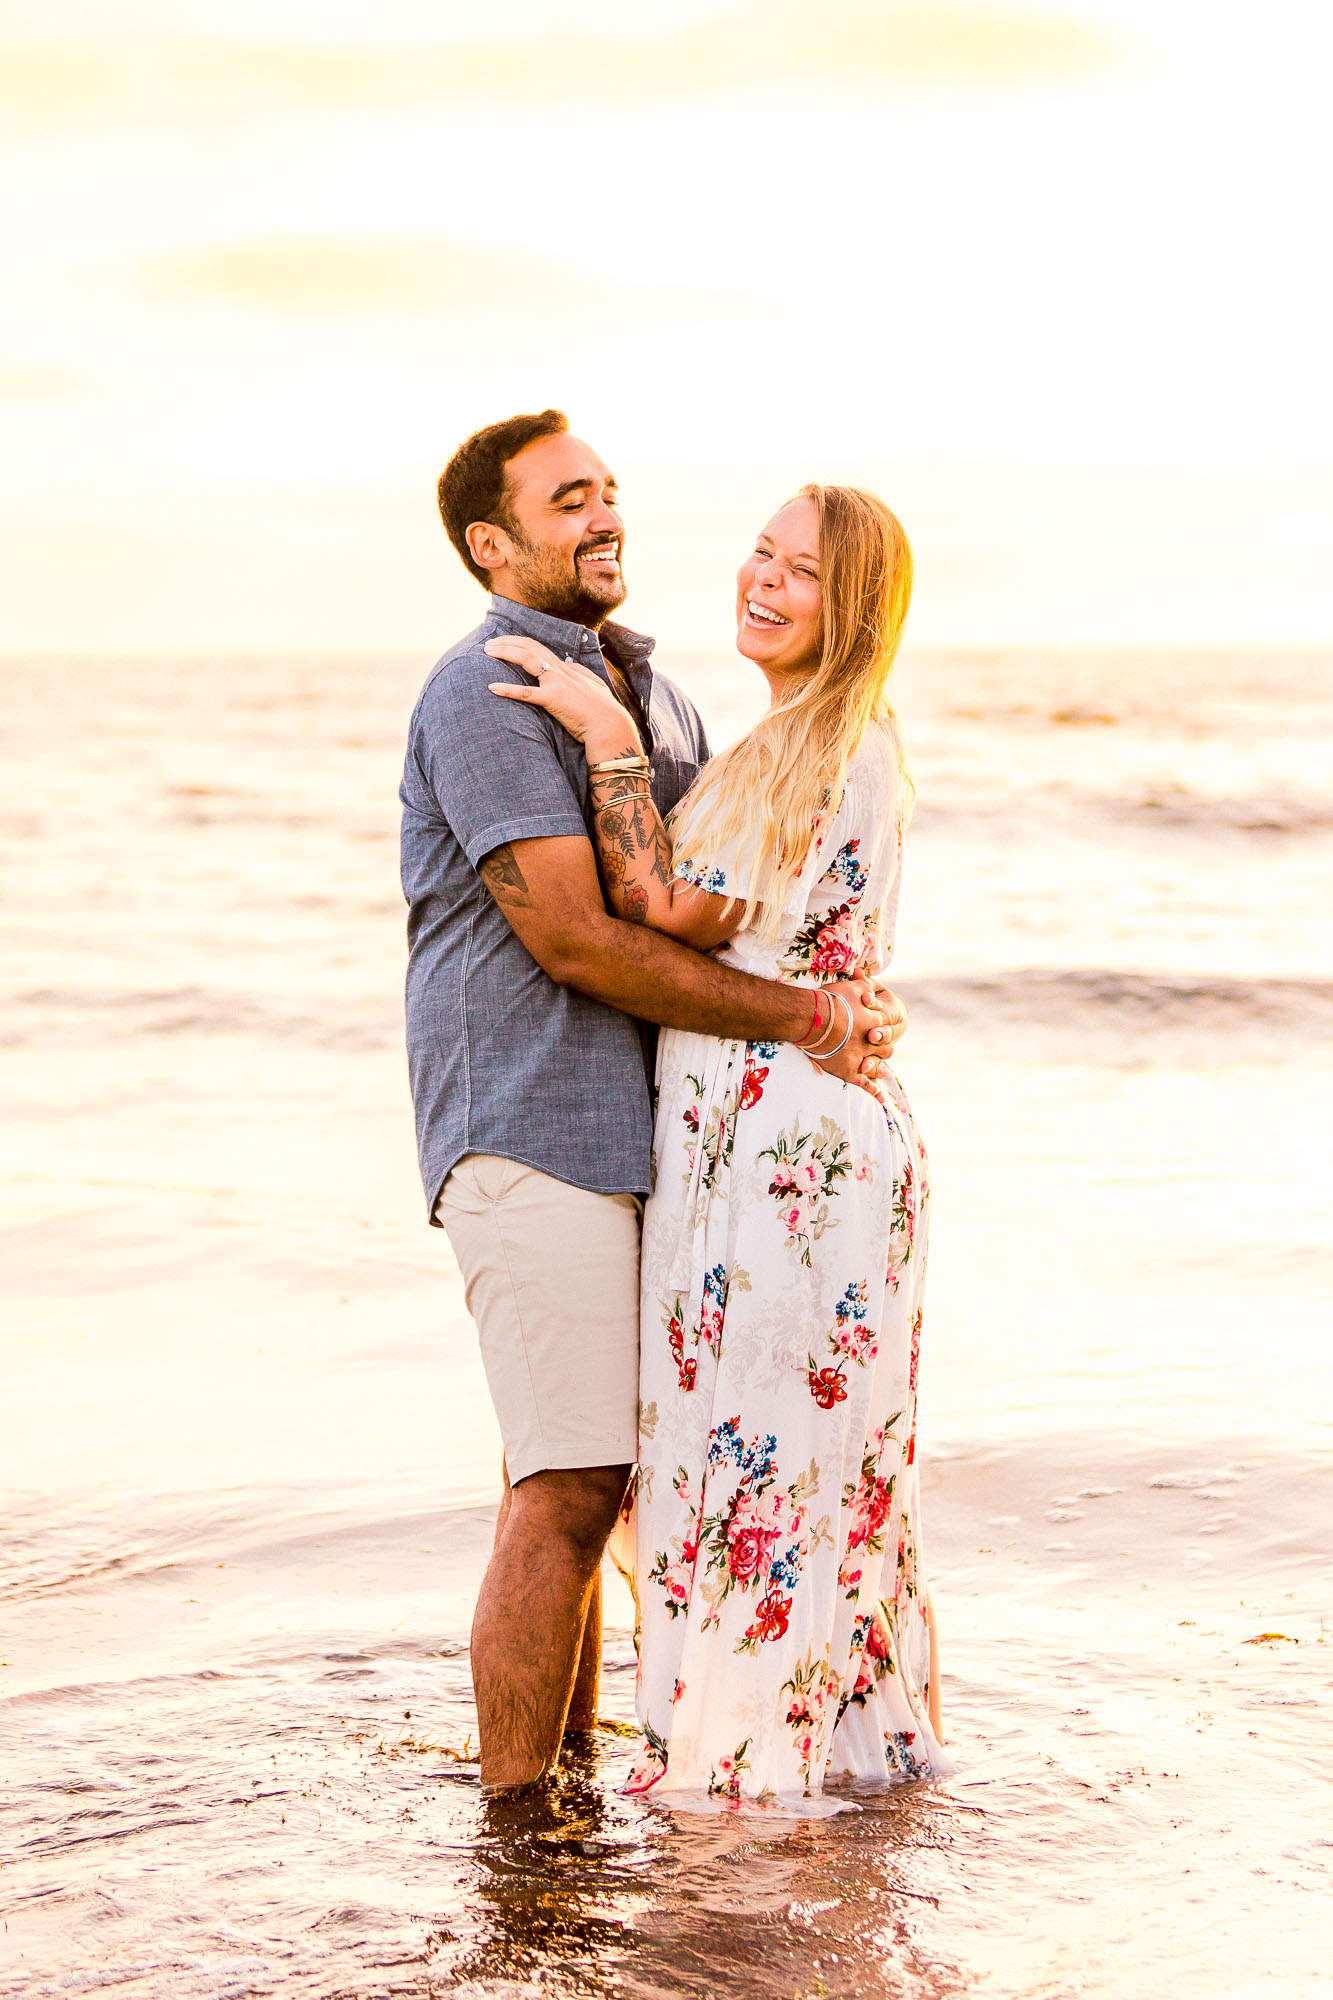 Justine_Puneet_Cardiff_Engagement_Session_242.jpg